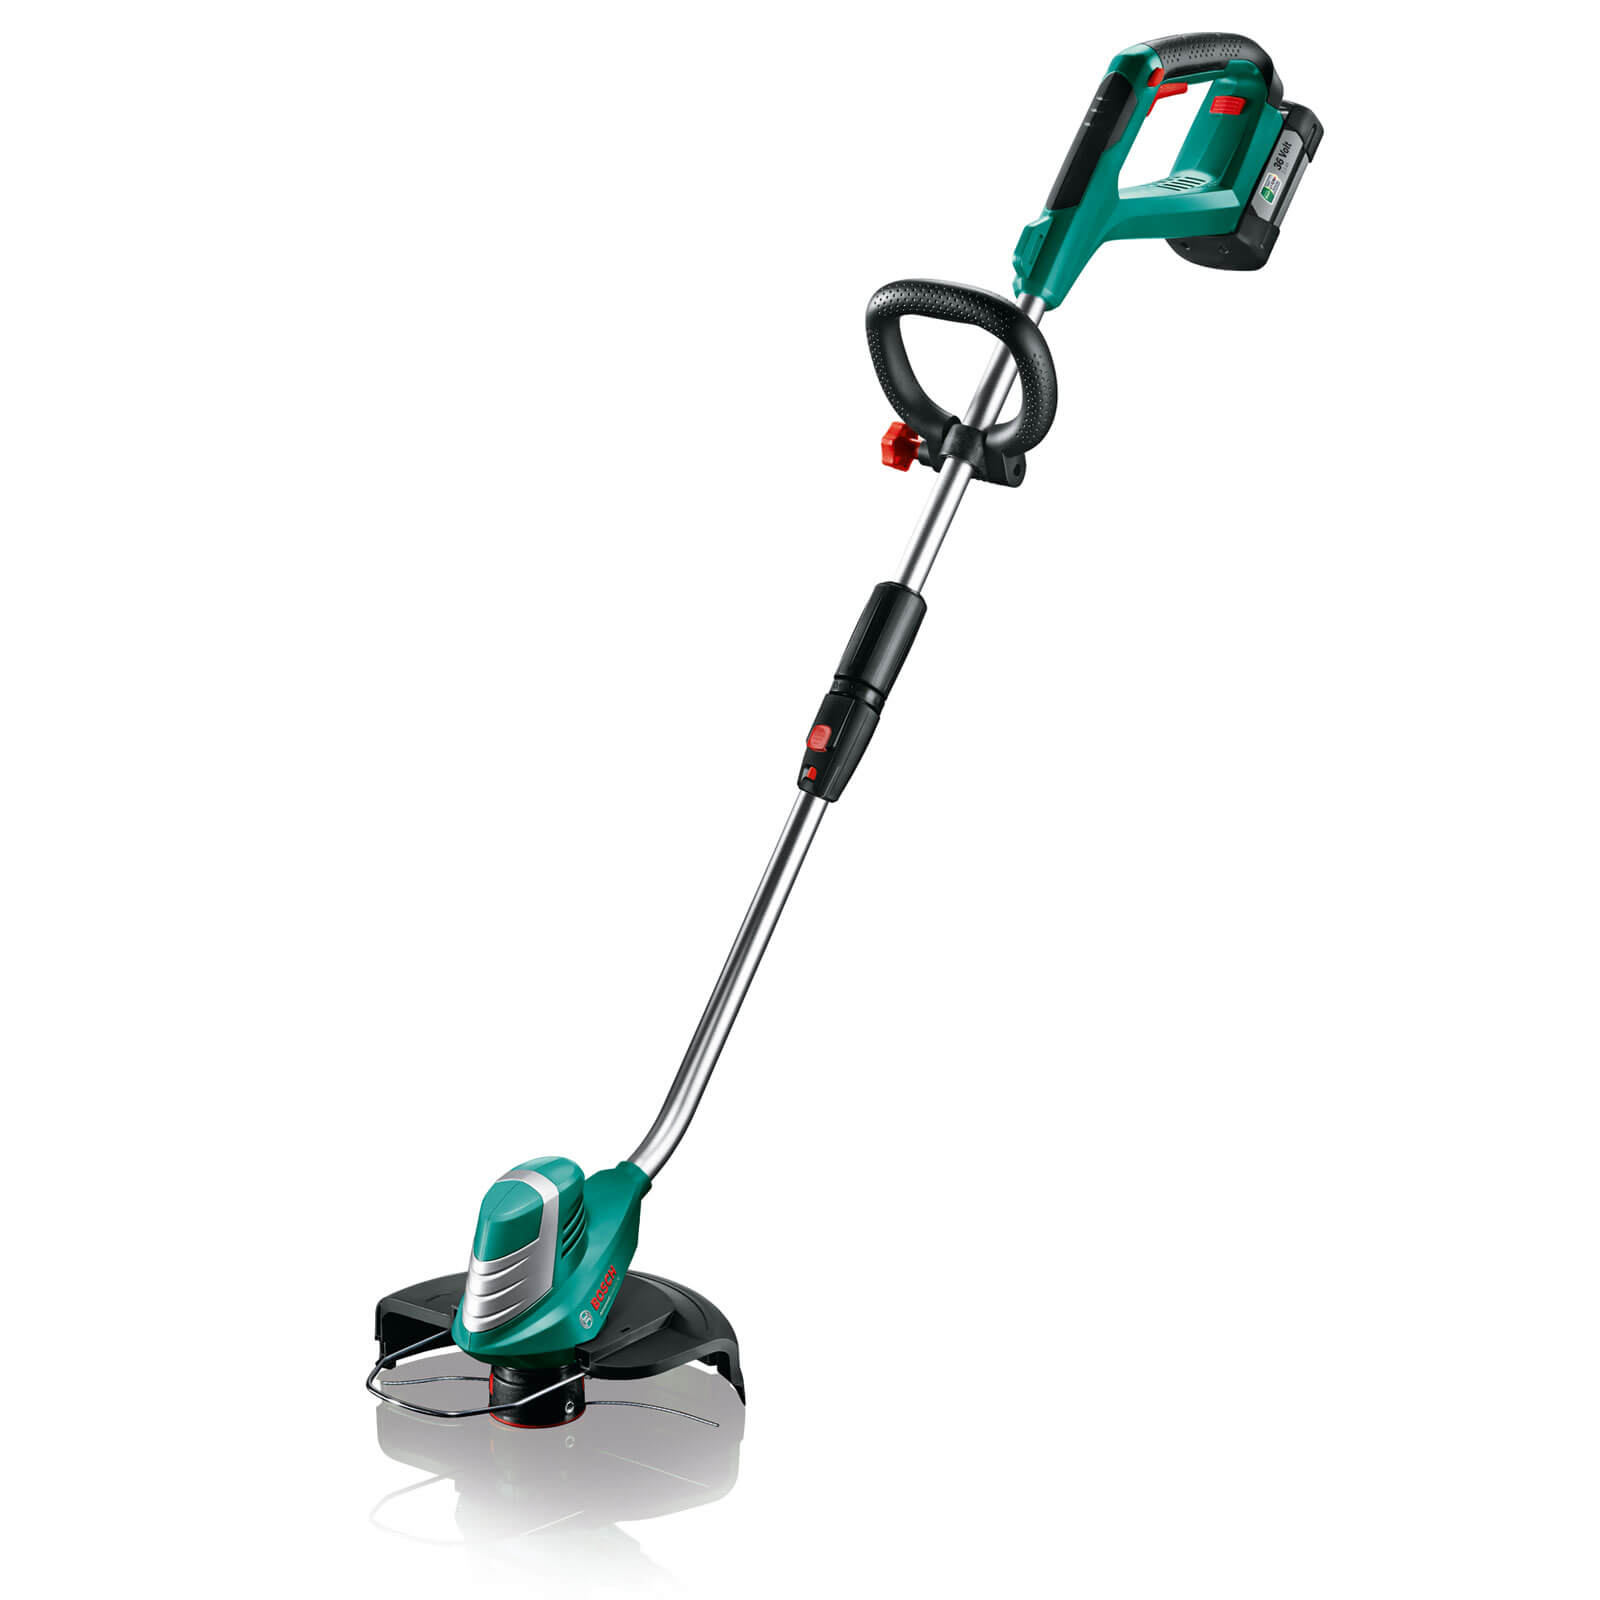 Image of Bosch ADVANCEDGRASSCUT 36v Cordless Grass Trimmer 300mm 1 x 2ah Li-ion Charger